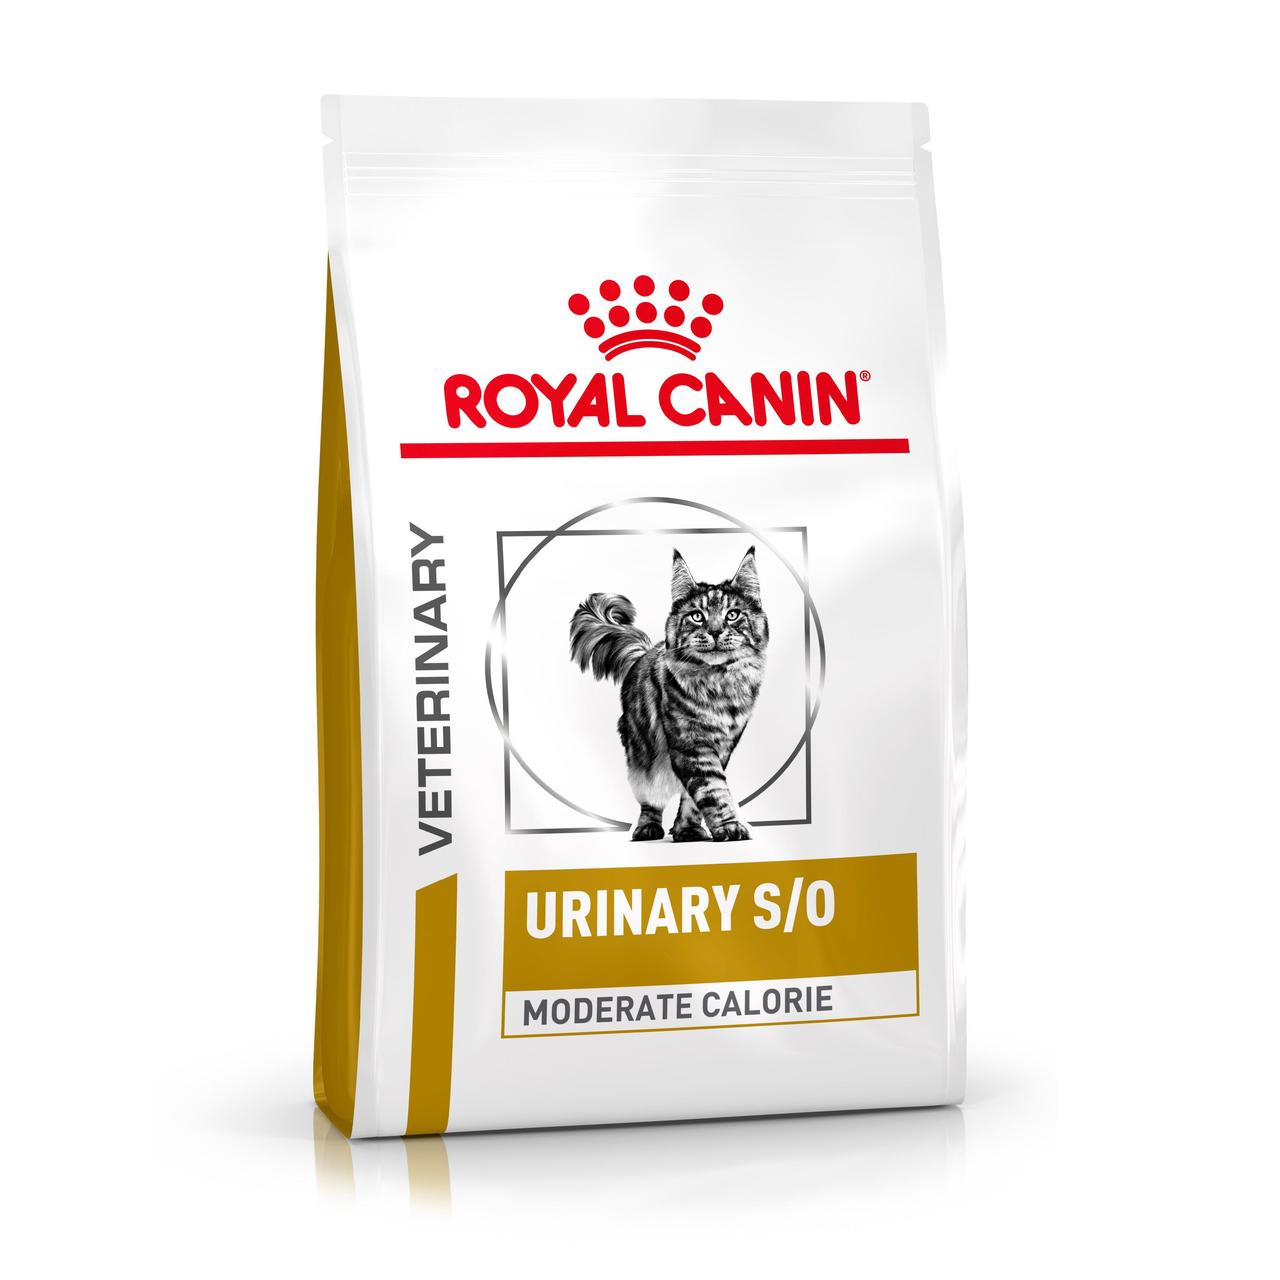 An image of Royal Canin Feline Urinary S/O Moderate Calorie